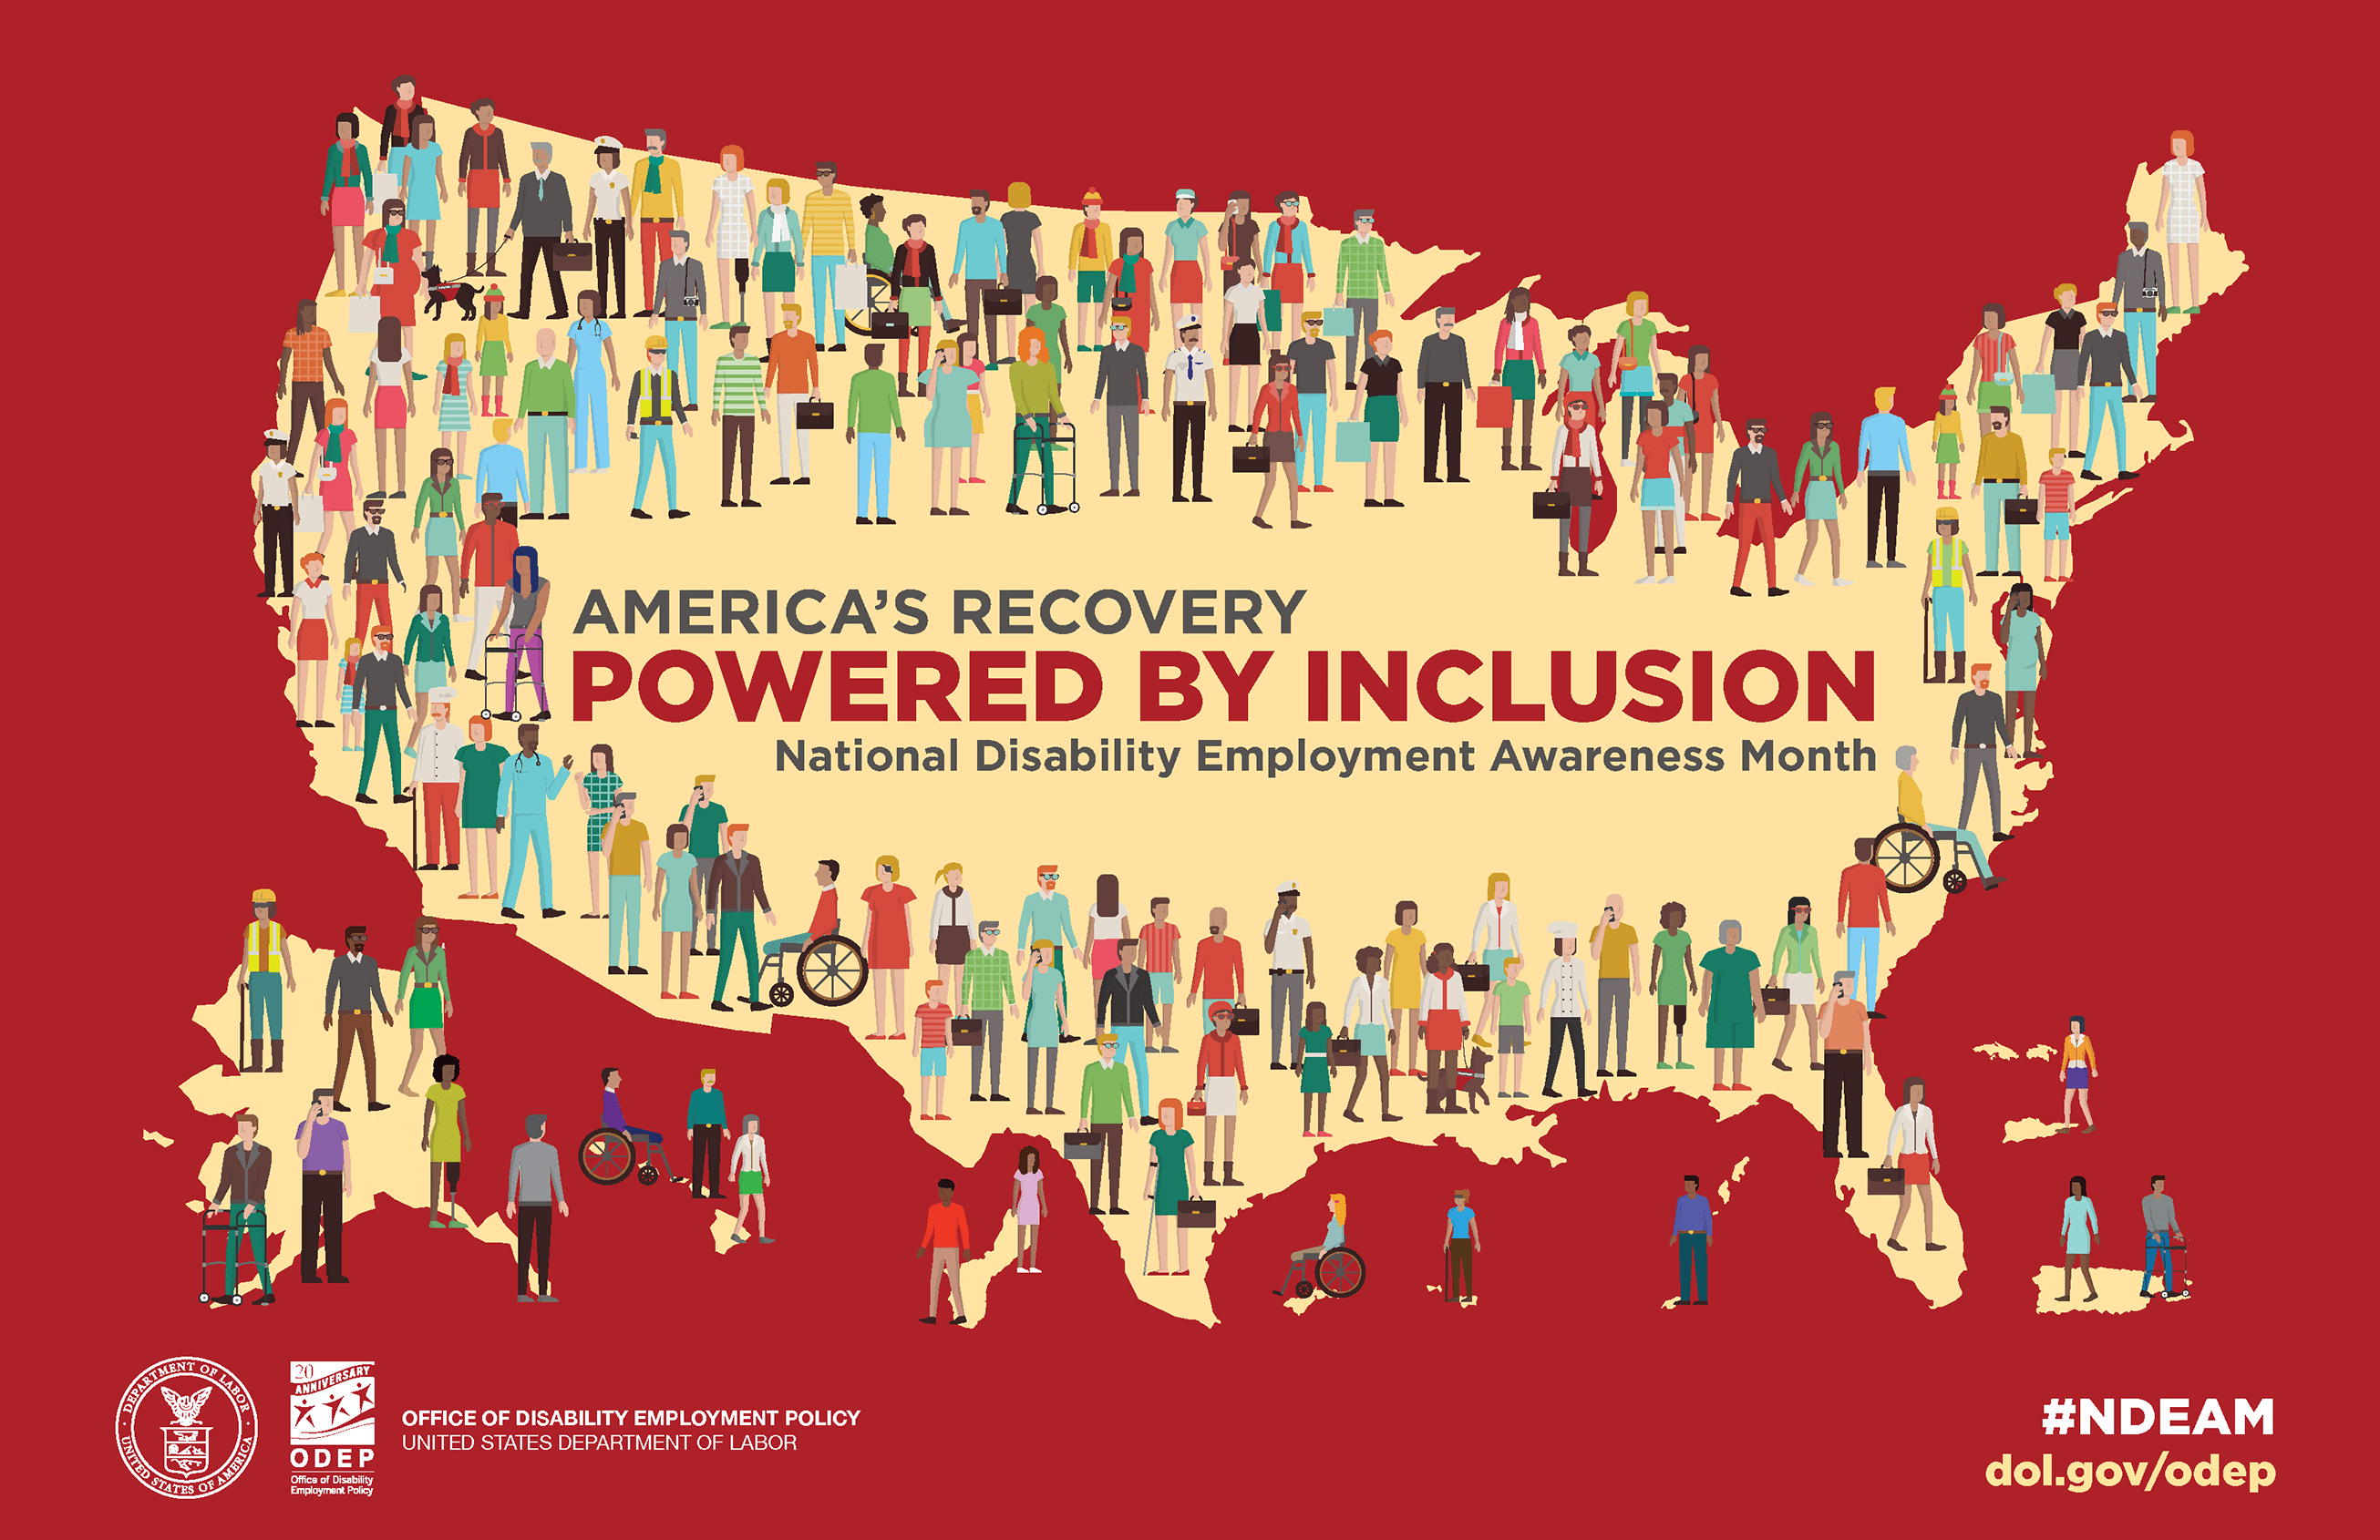 National Disability Employment Awareness Month (NDEAM) Map of the United States